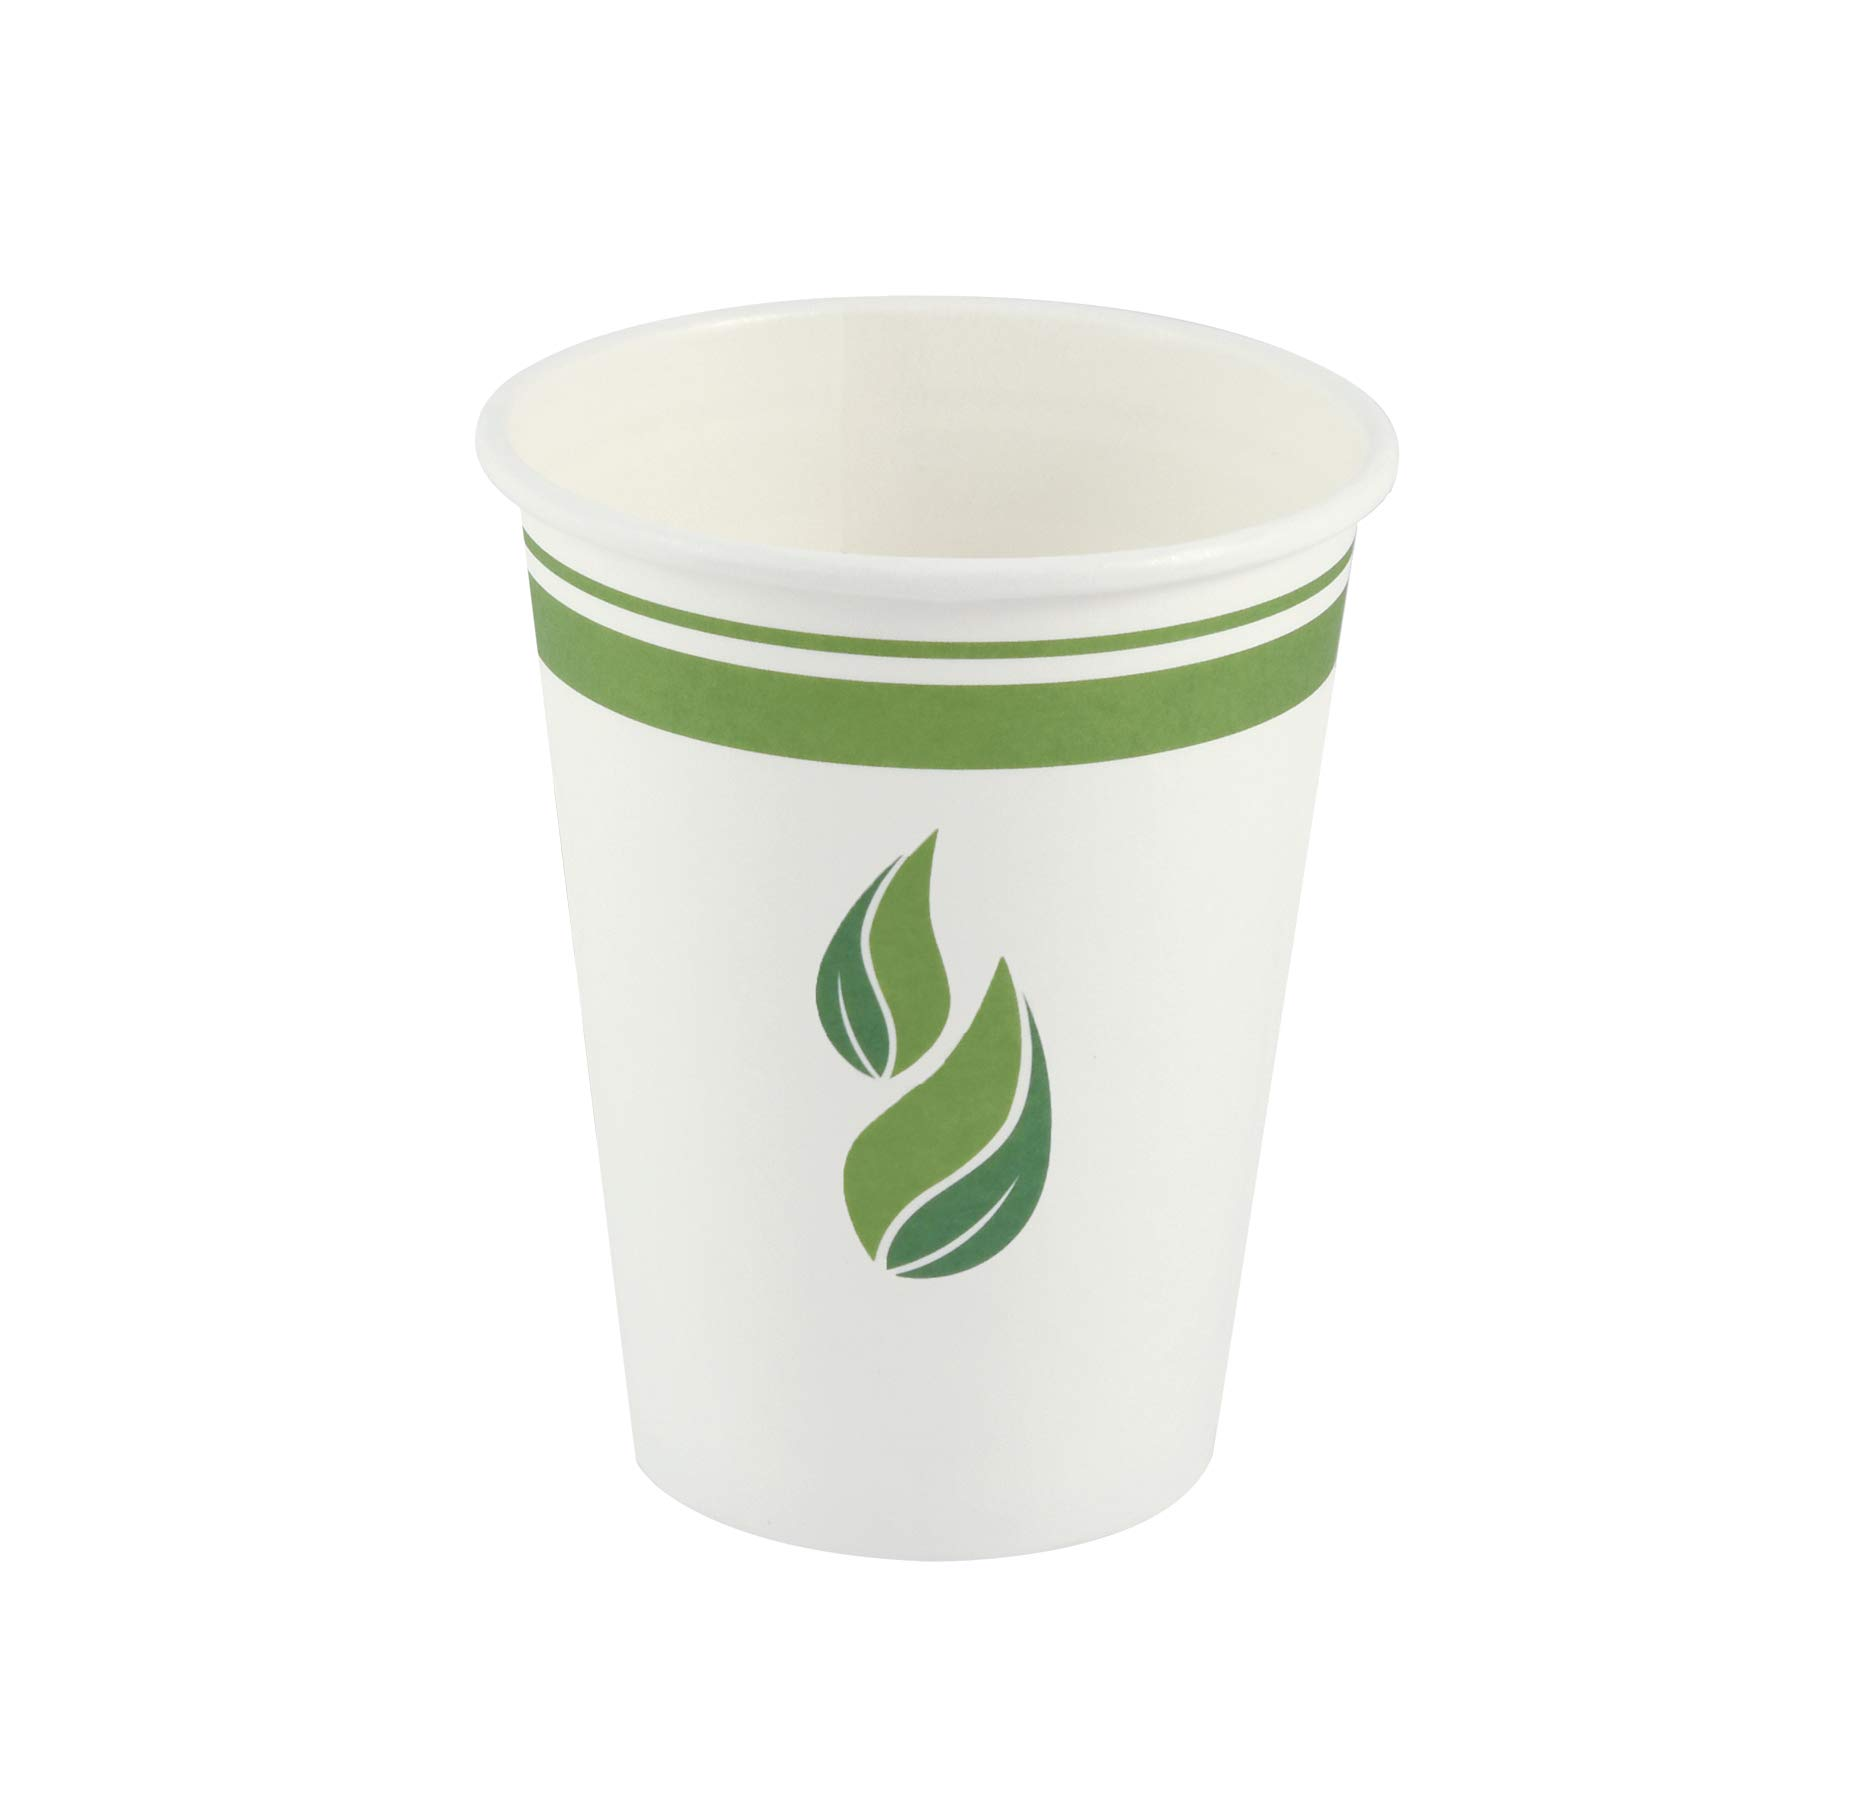 Eco Guardian 12 Ounce Compostable PLA-Lined Drinking Cup, White, 1000 Pack